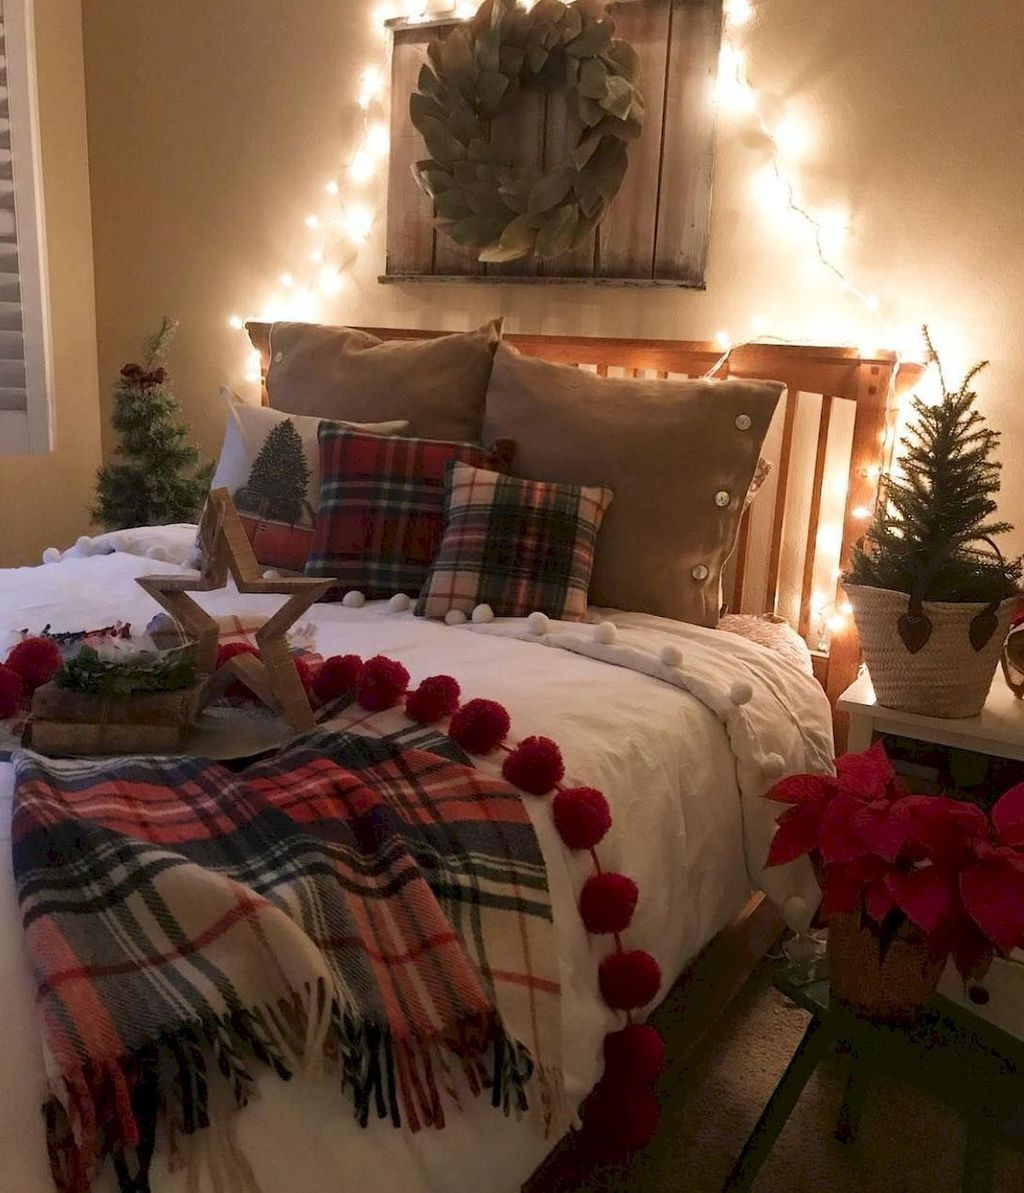 Stunning Christmas Lights Decoration Ideas In The Bedroom 13